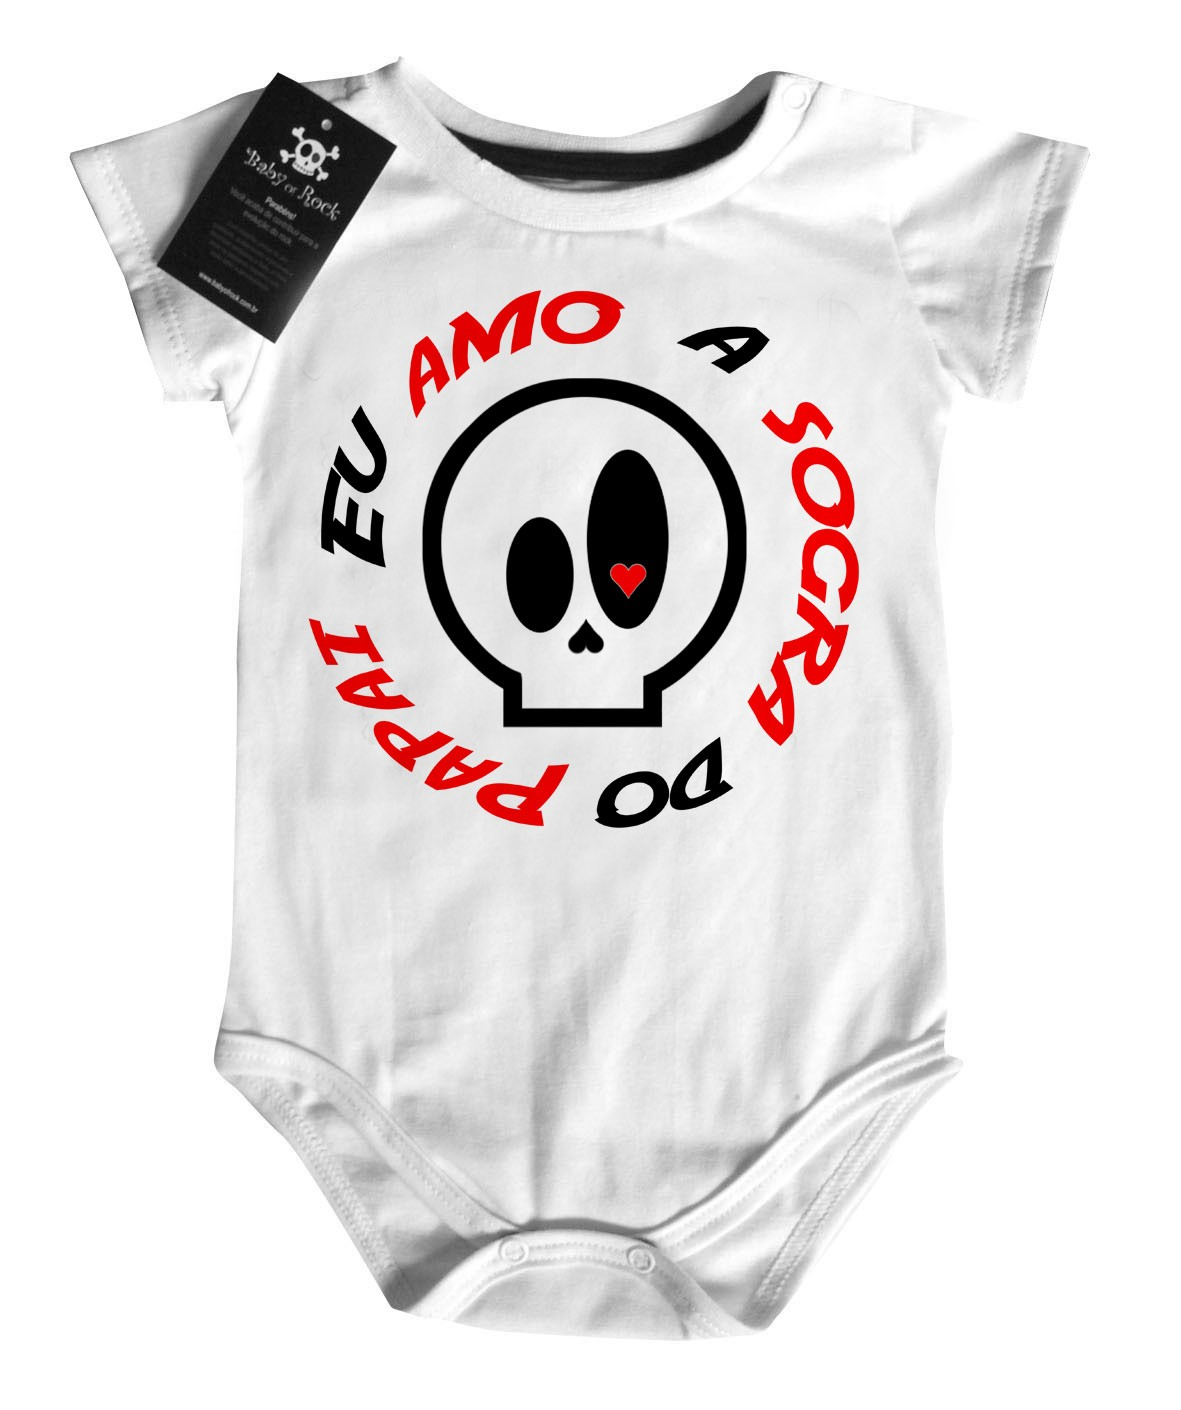 Body Baby Divertido - Amo a sogra do Papai - White  - Baby Monster - Body Bebe